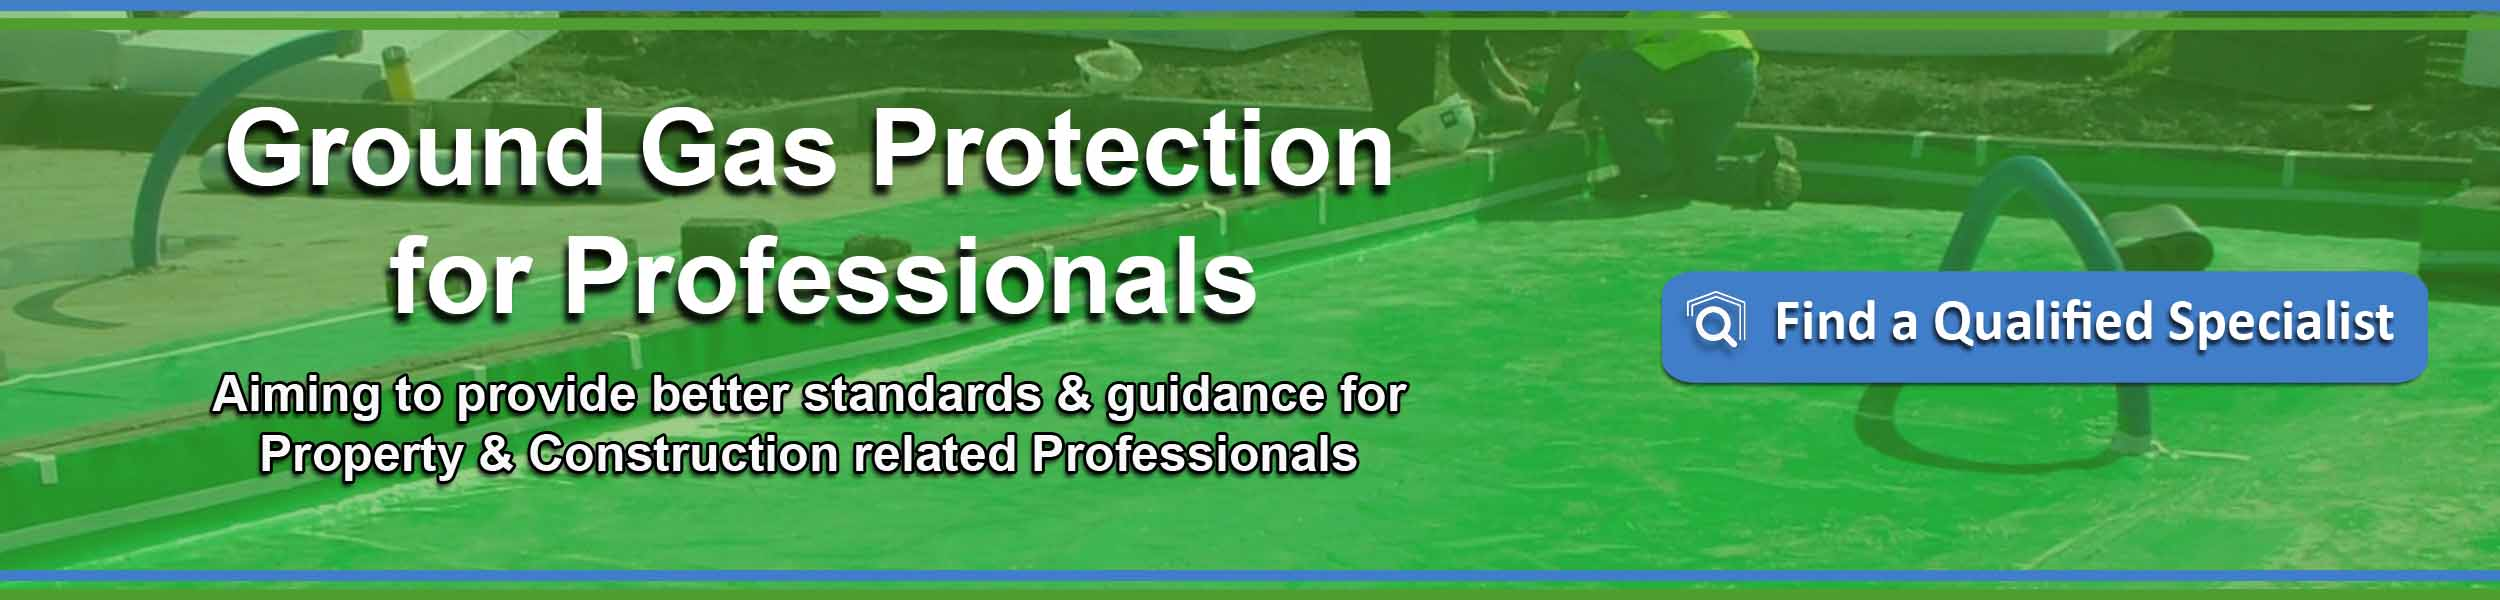 Ground Gas Protection for Professionals